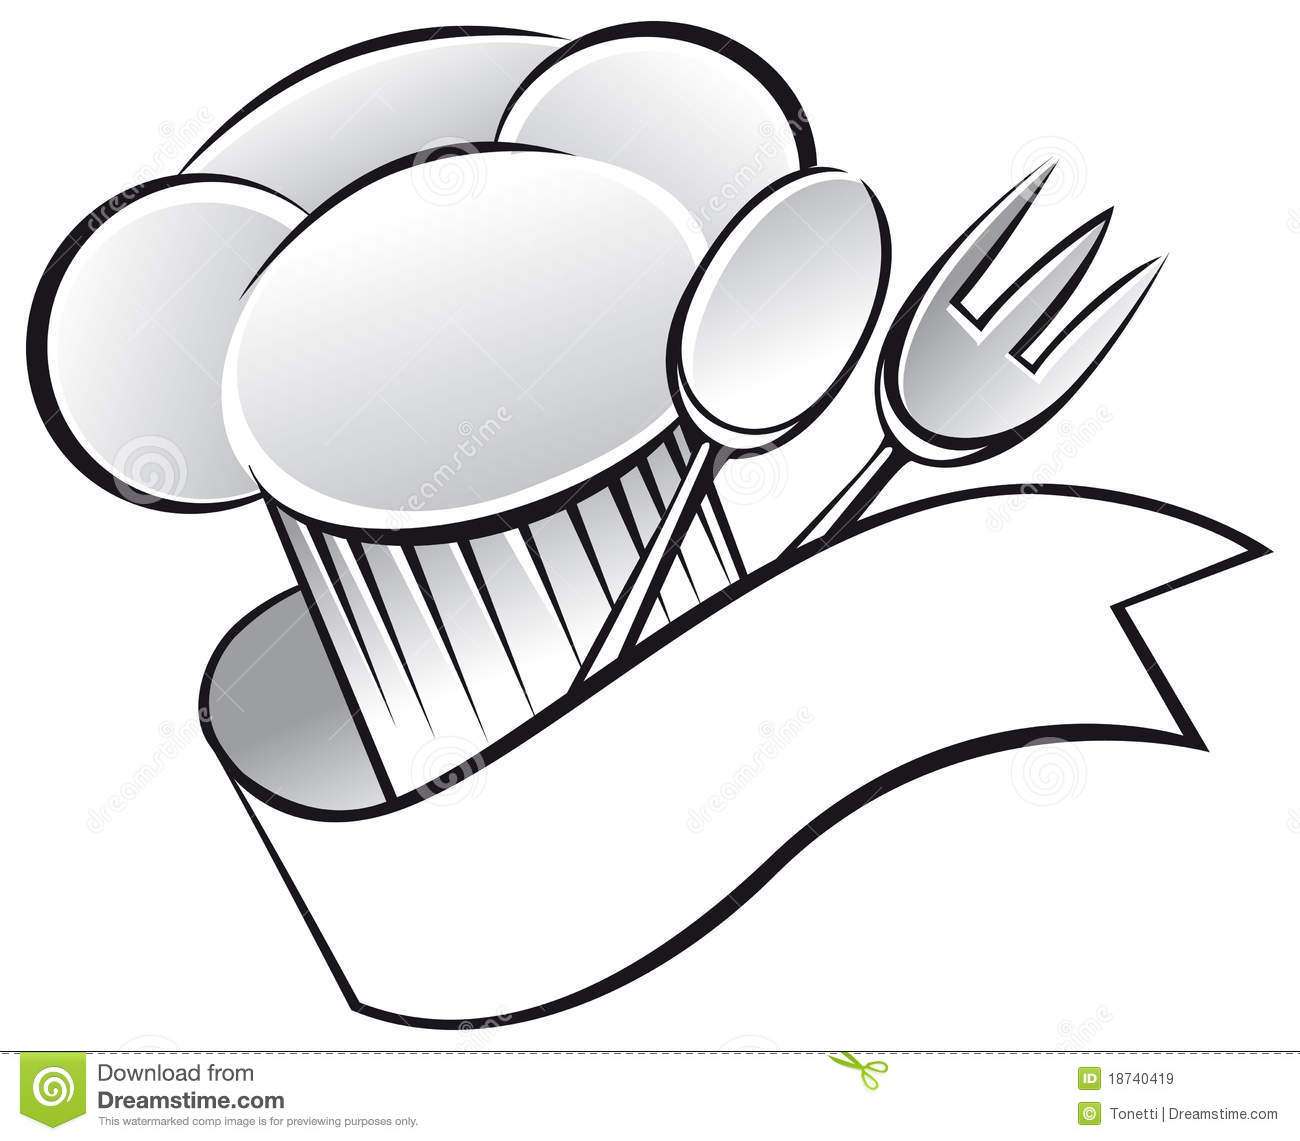 Chef clipart chef hat, Chef chef hat Transparent FREE for.